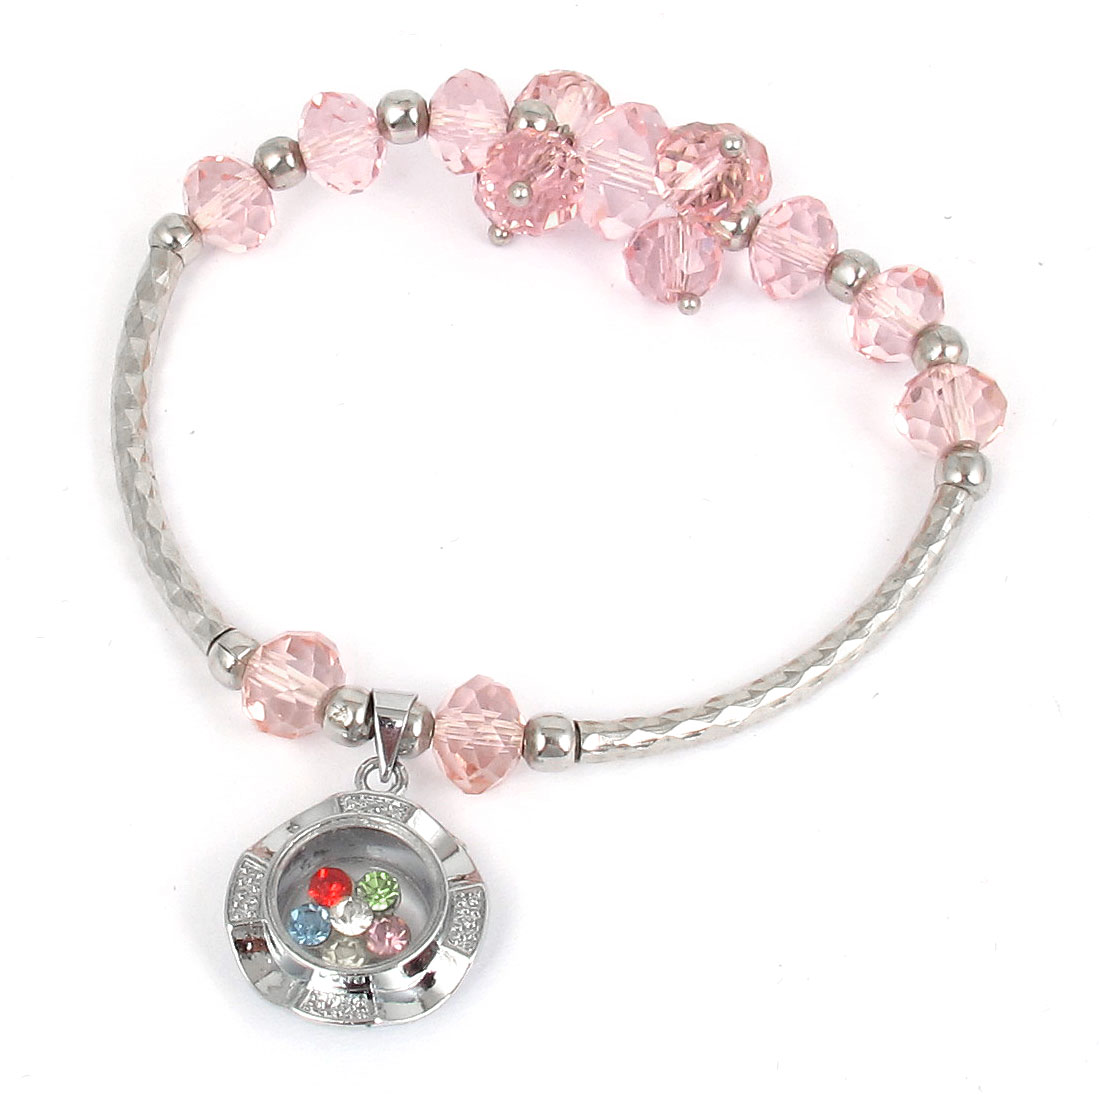 Plastic Faux Faceted Crystal Beads Lucky Pendant Elastic Wrist Ornament Bangle Bracelet Pink